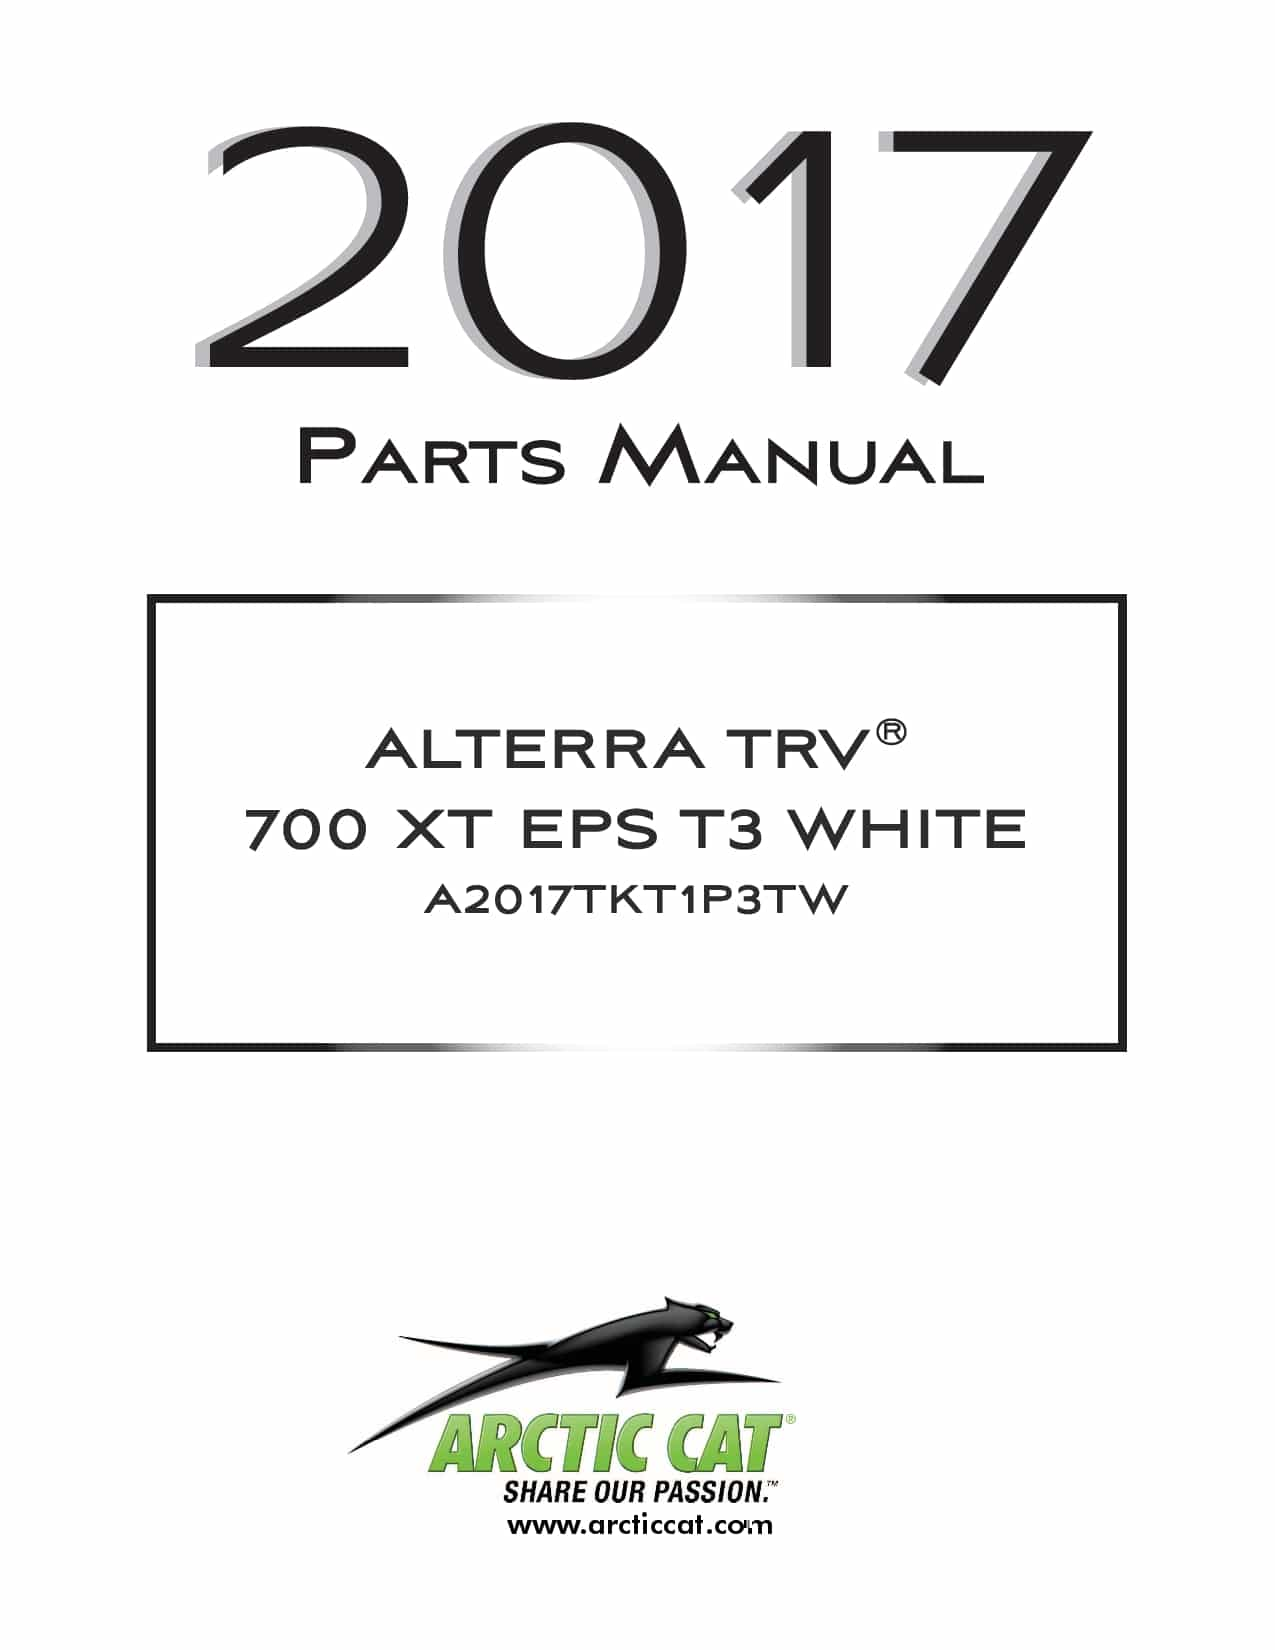 ARCTIC CAT 2017 Alterra TRV 700 XT EPS T3b white part